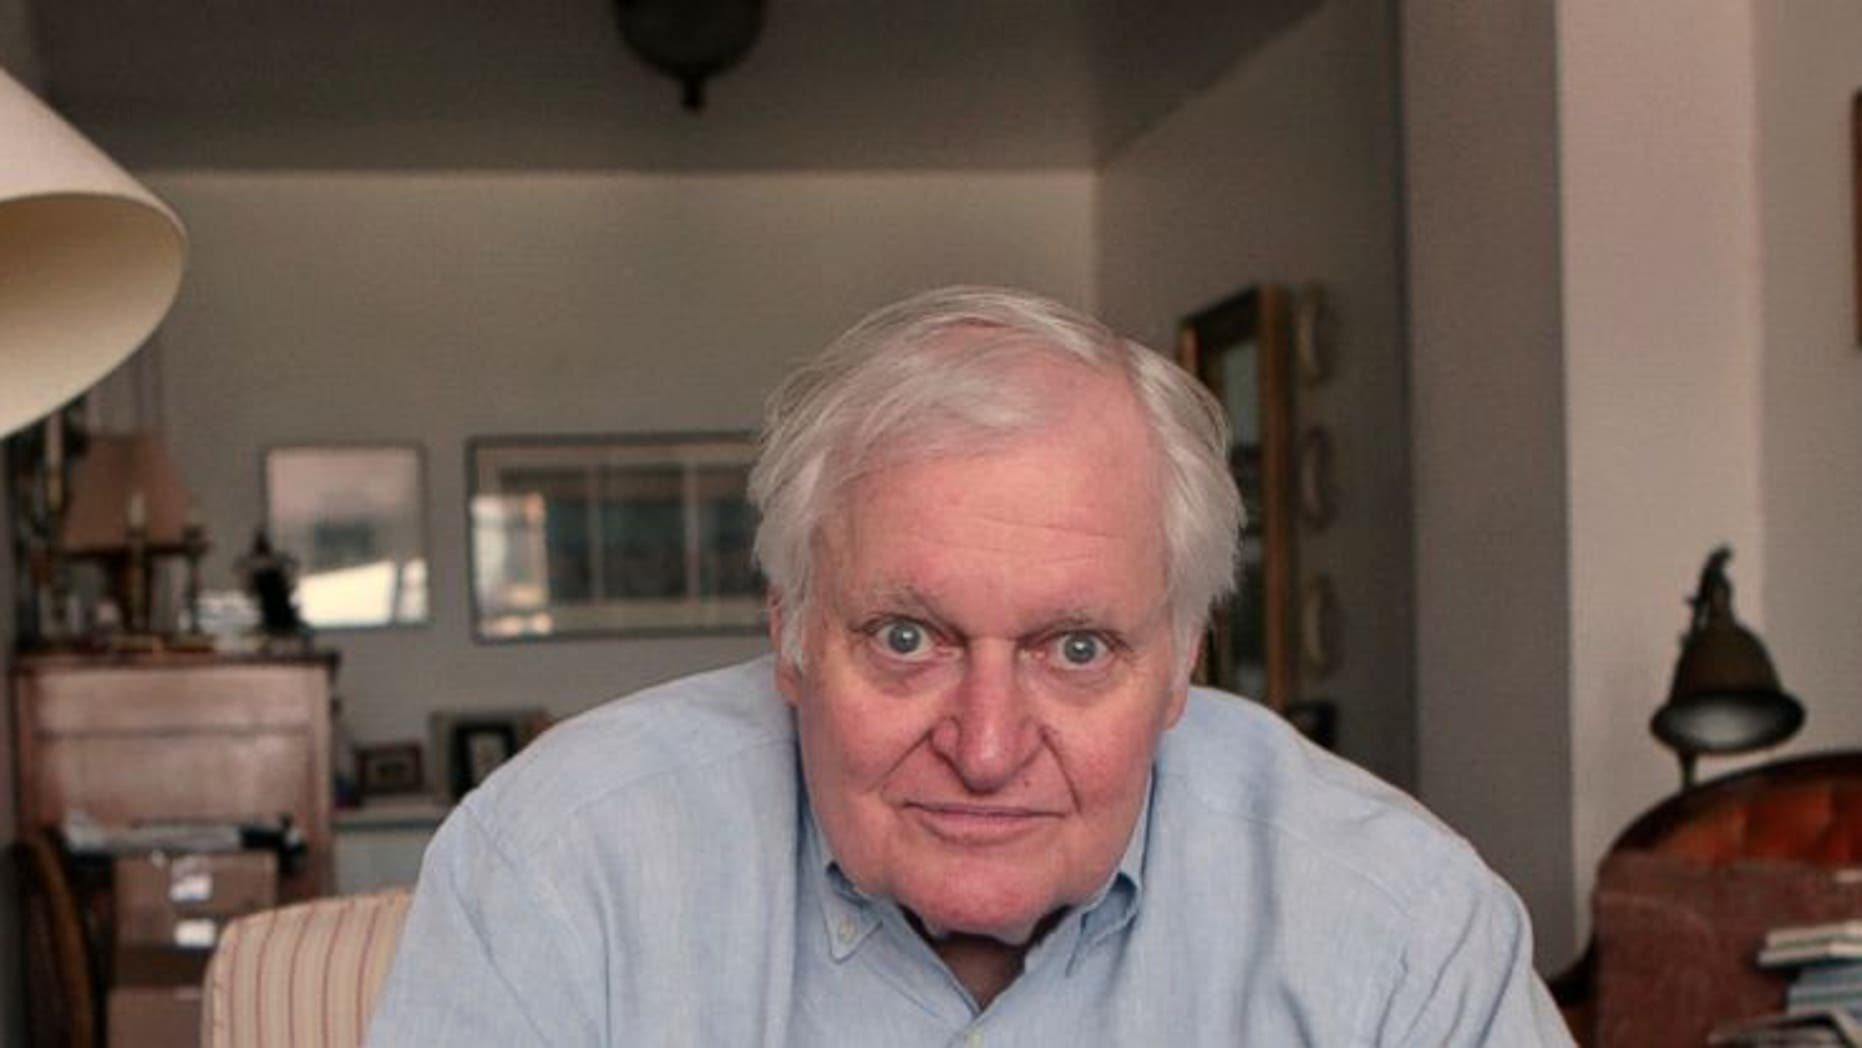 Poet John Ashbery, widely regarded as one of the world's greatest poets, died Sunday at age 90 of natural causes. (AP Photo)